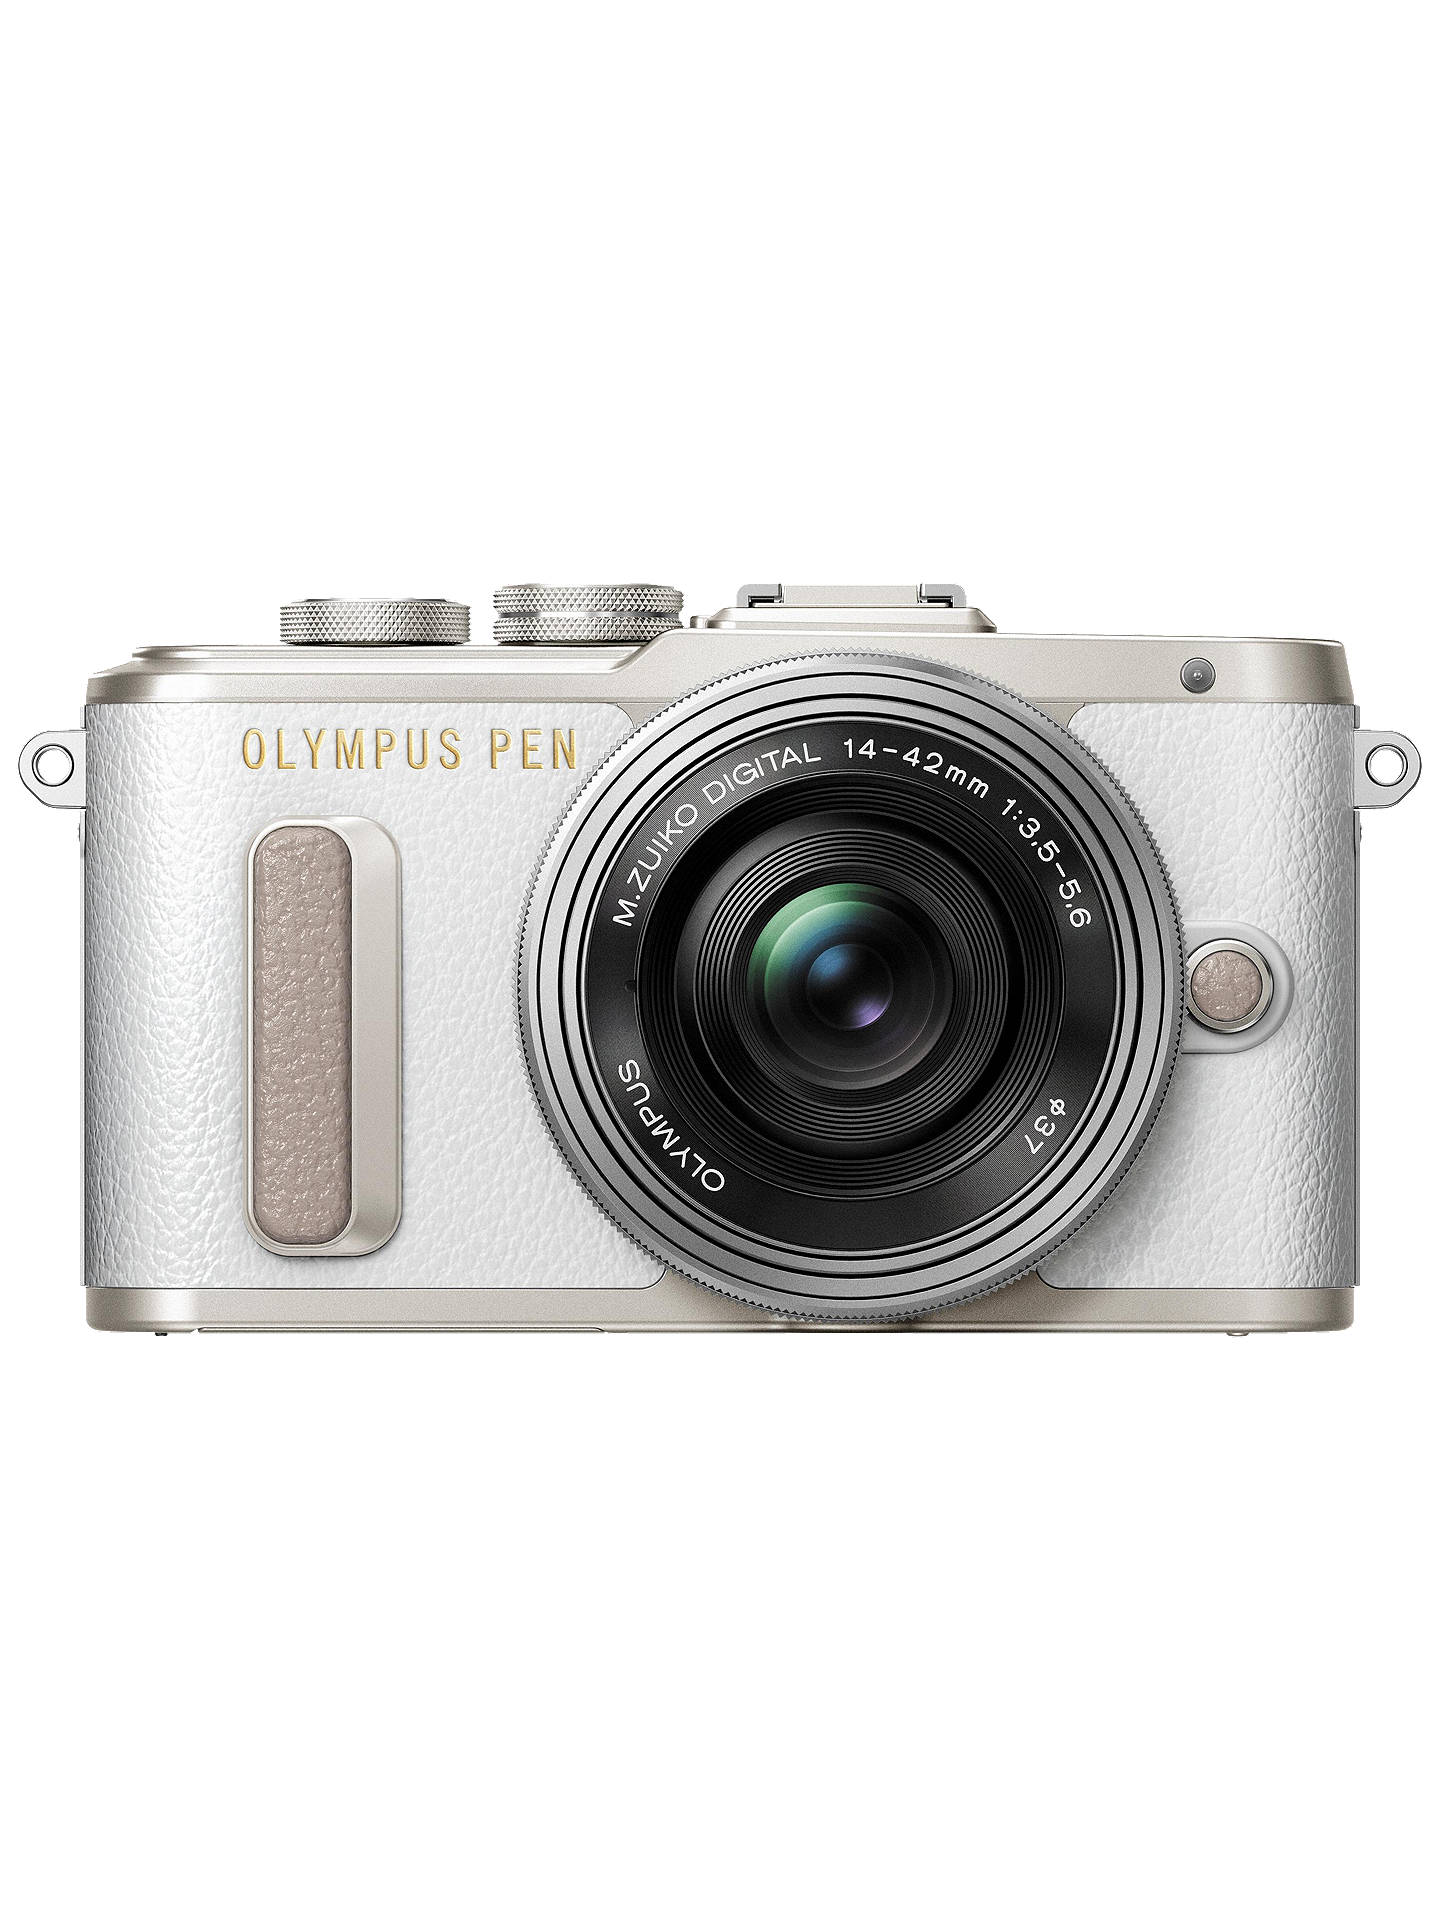 "BuyOlympus PEN E-PL8 Compact System Camera with 14-42mm EZ Lens, HD 1080p, 16.1MP, Wi-Fi, 3"" LCD Touch Screen, White Online at johnlewis.com"